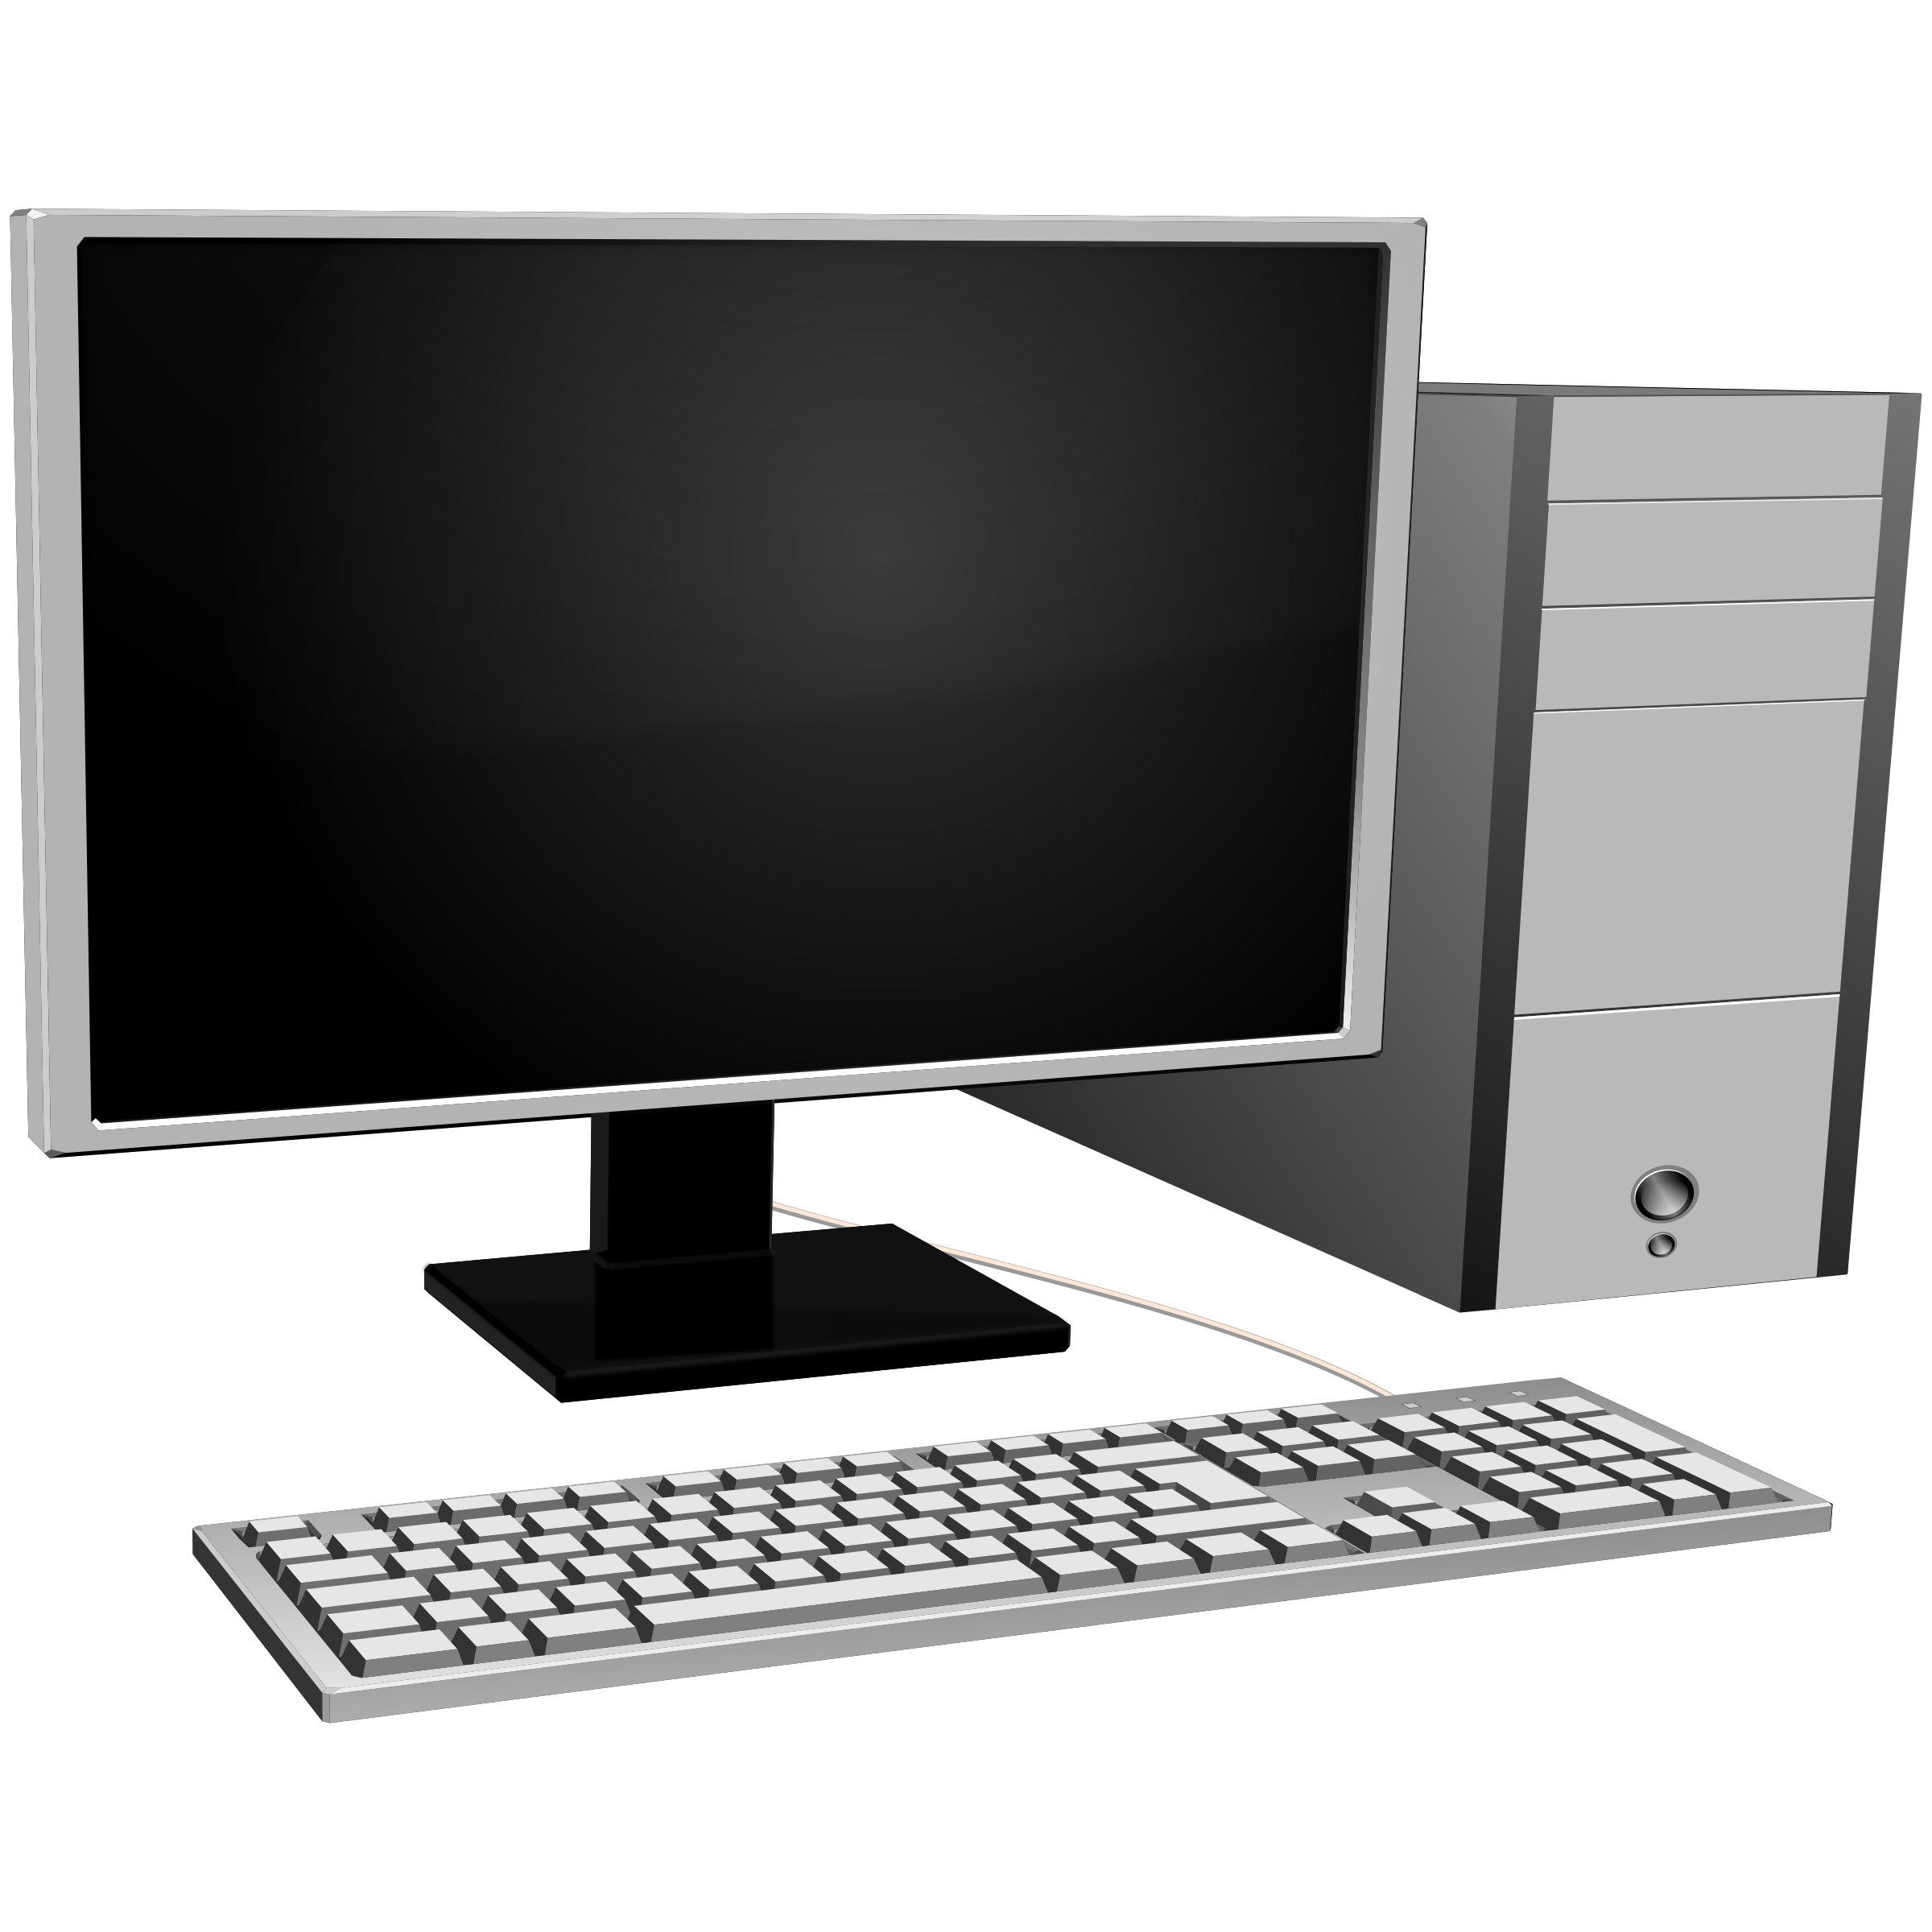 Big image png. Pc clipart basic computer